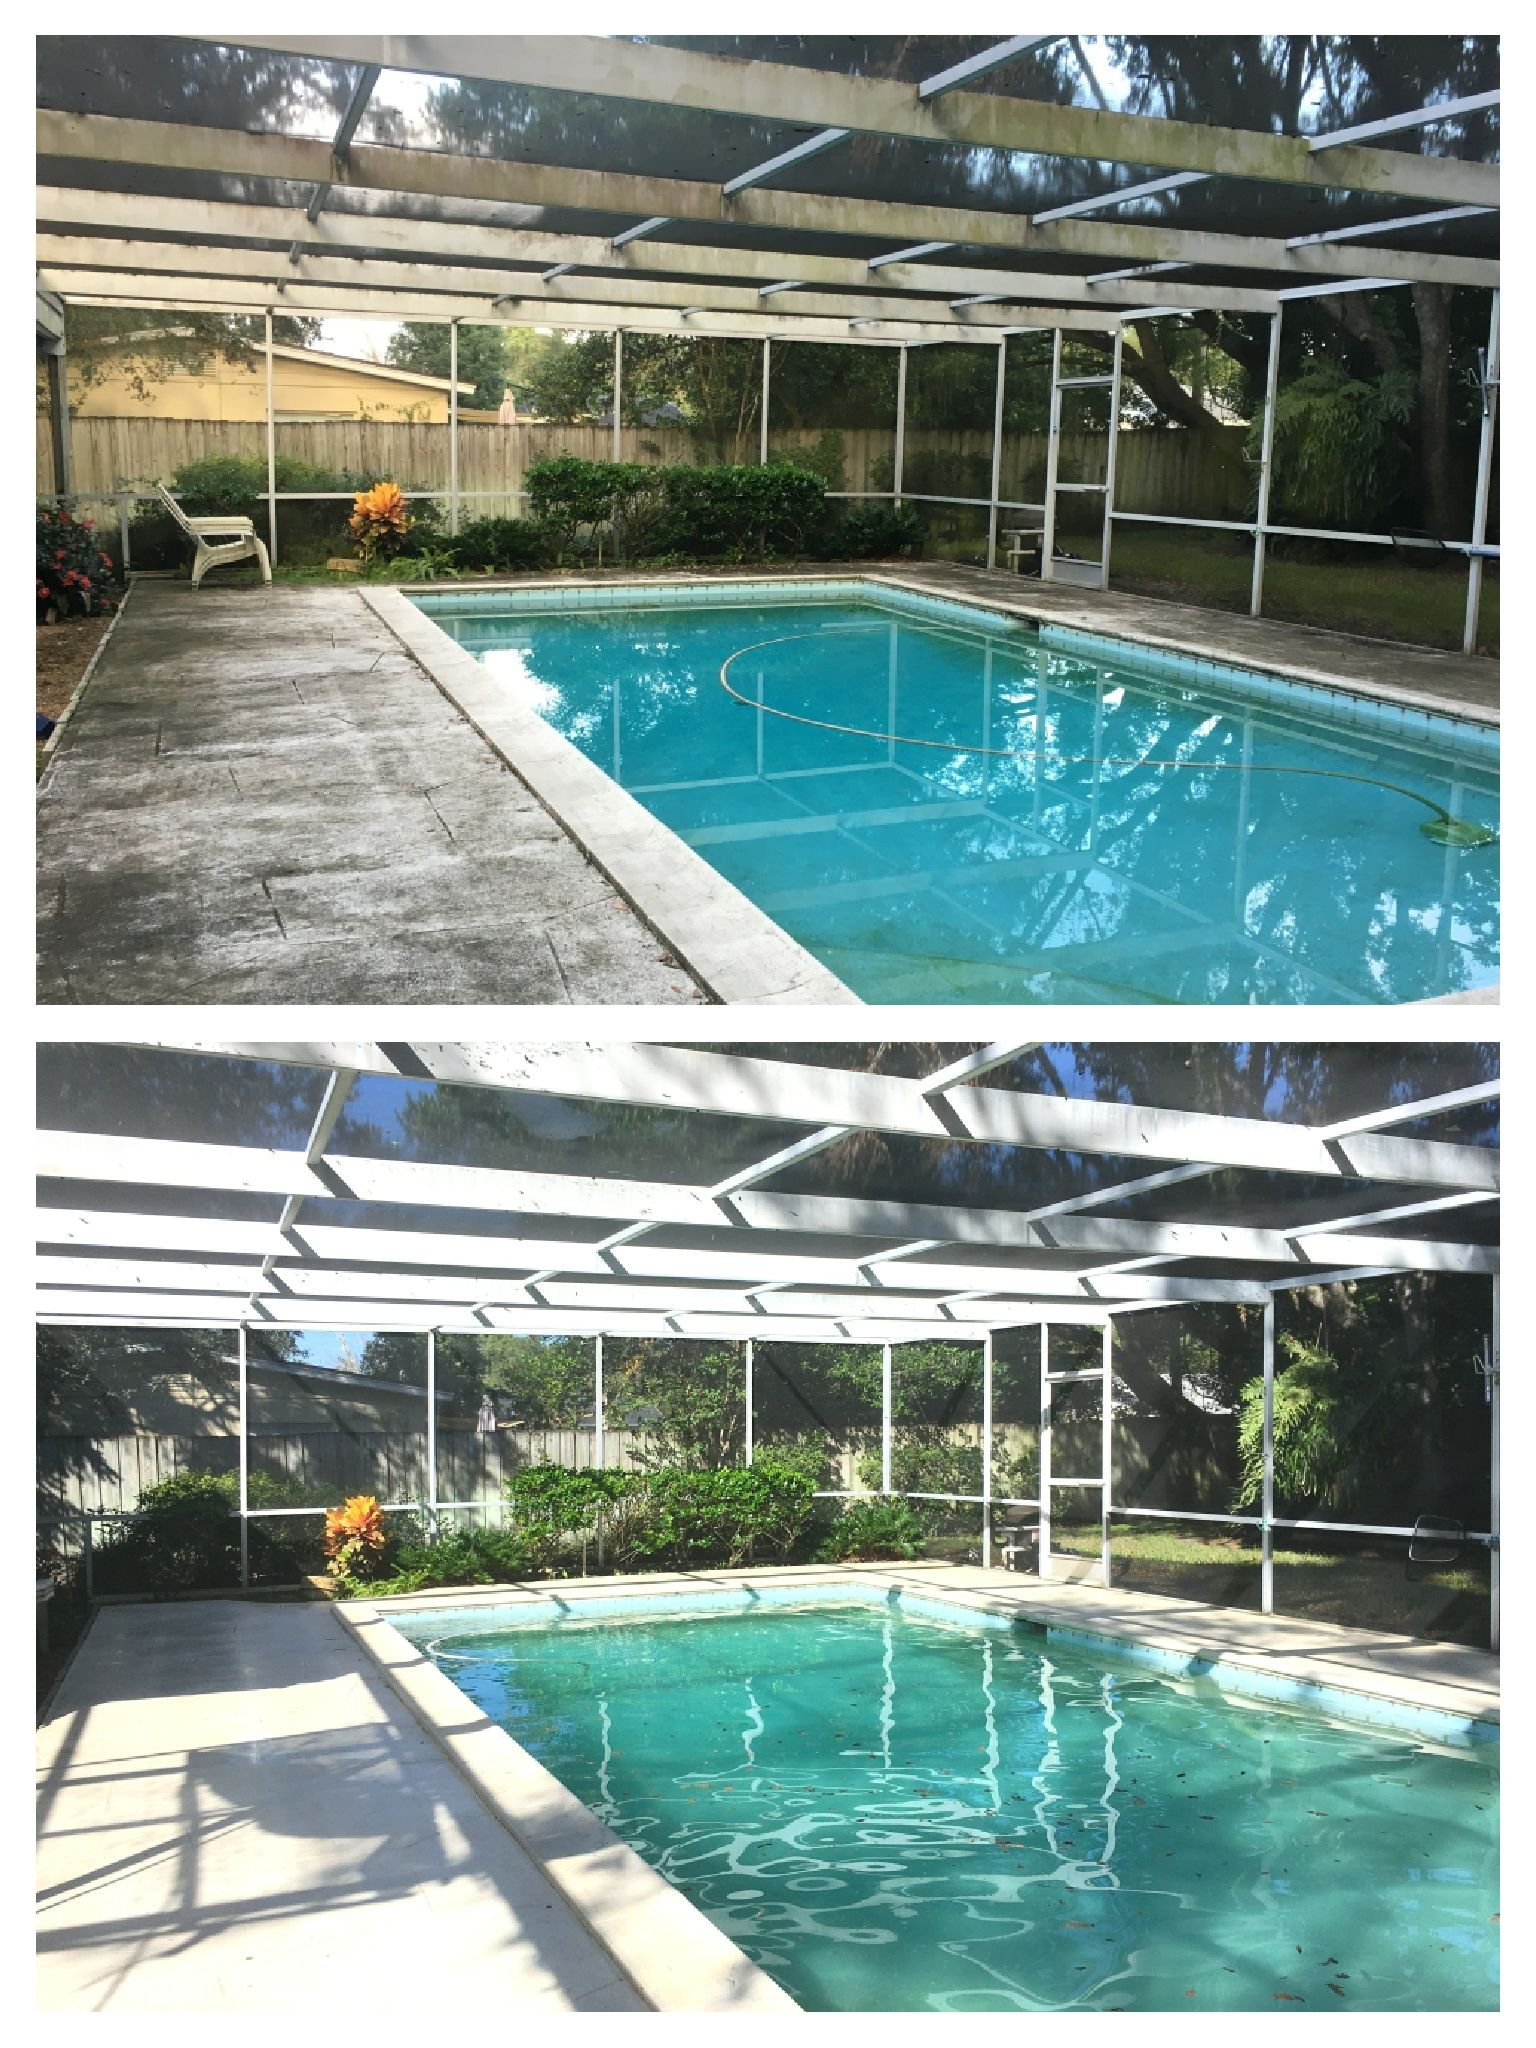 Nice Before After Of This Orlando Pool Screen Enclosure Cleaning We Can Make These Lanai Areas Look New Again Without Any Or Plant Damage